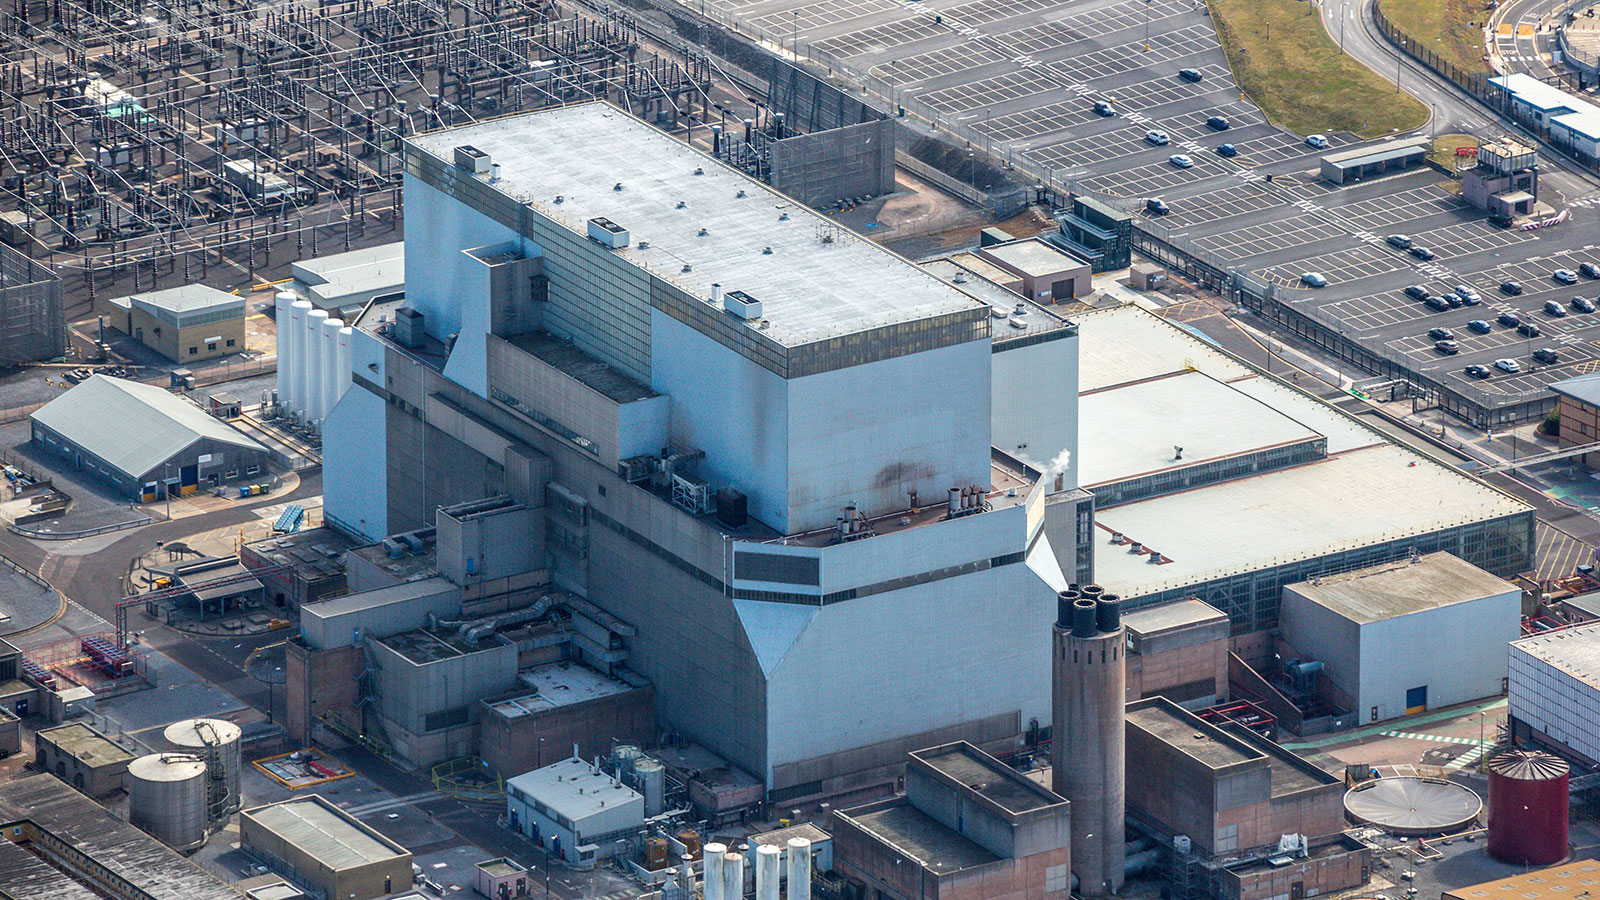 Nuclear Catastrophe and Reactor Shutdown | HowStuffWorks